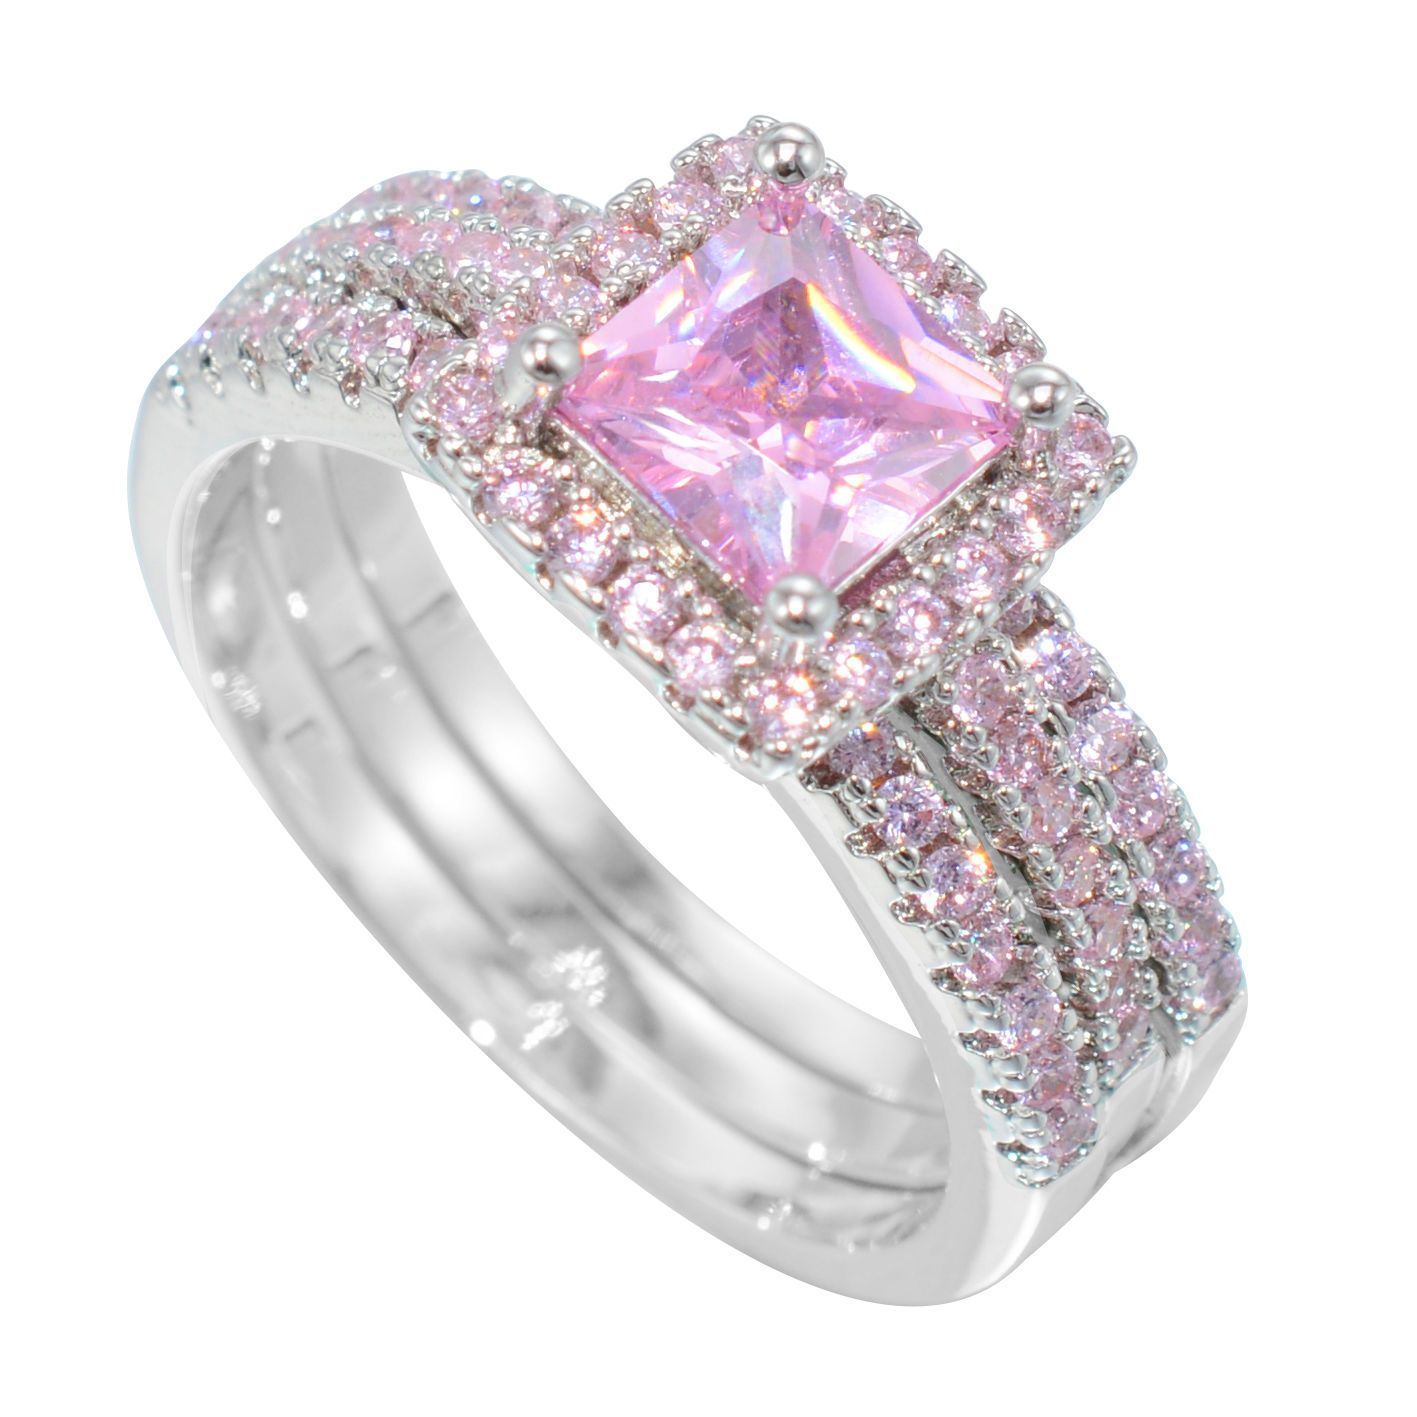 Size 7 Fashion Pink Sapphire White Gold Filled Engagement